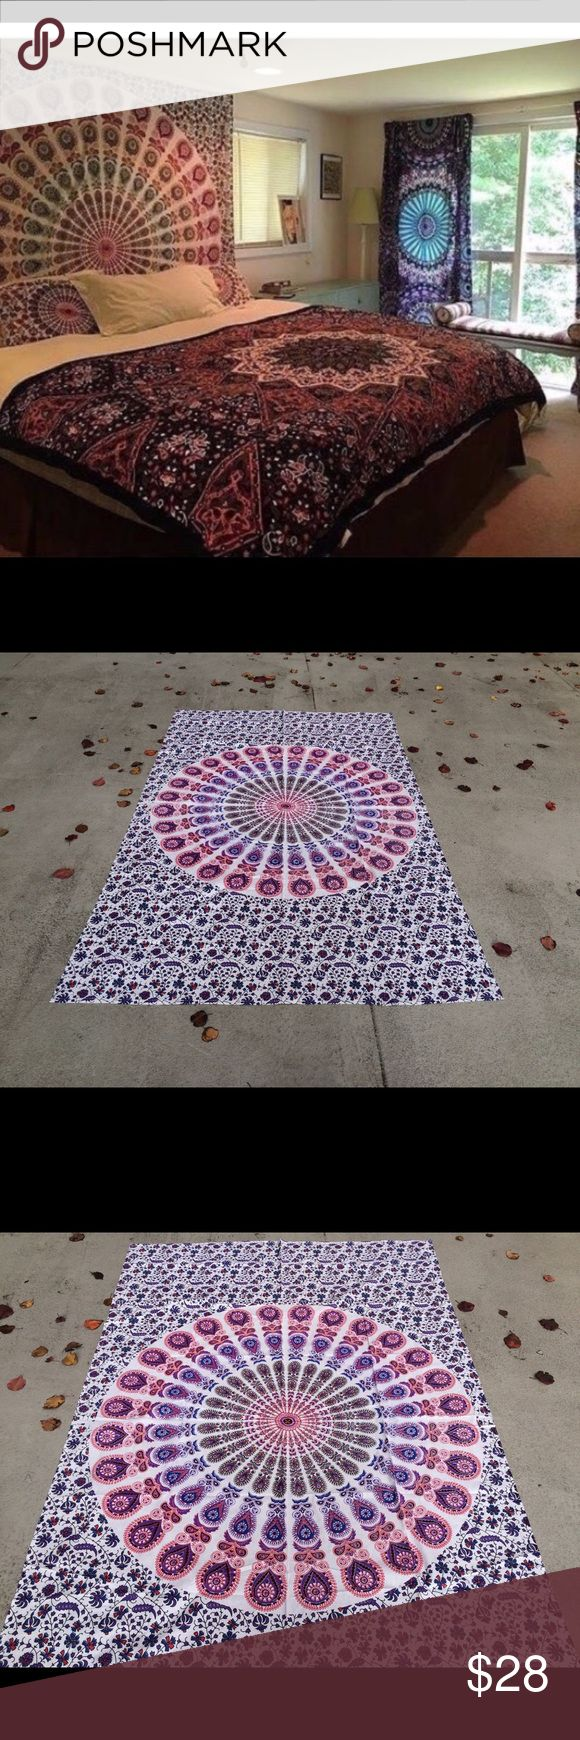 "Kids room decor boho home decor tapestry mandala Wall hanging Bed Couch Cover   This beautiful couch cover/bed spread is hand screen printed on cotton fabric. Can be used a bedspread, Bed Sheets, couch spread, wall hanging or celling decoration. It will look great indoor or outdoor for little picnic or tipi for sleepover parties and music festivals.  Size: 87"" X 54"" inch (Twin bed)  Material : 100% Cotton  Wash: Cold hand wash or Machine Delicates cycle & Air dry   #festival #kidsroom…"